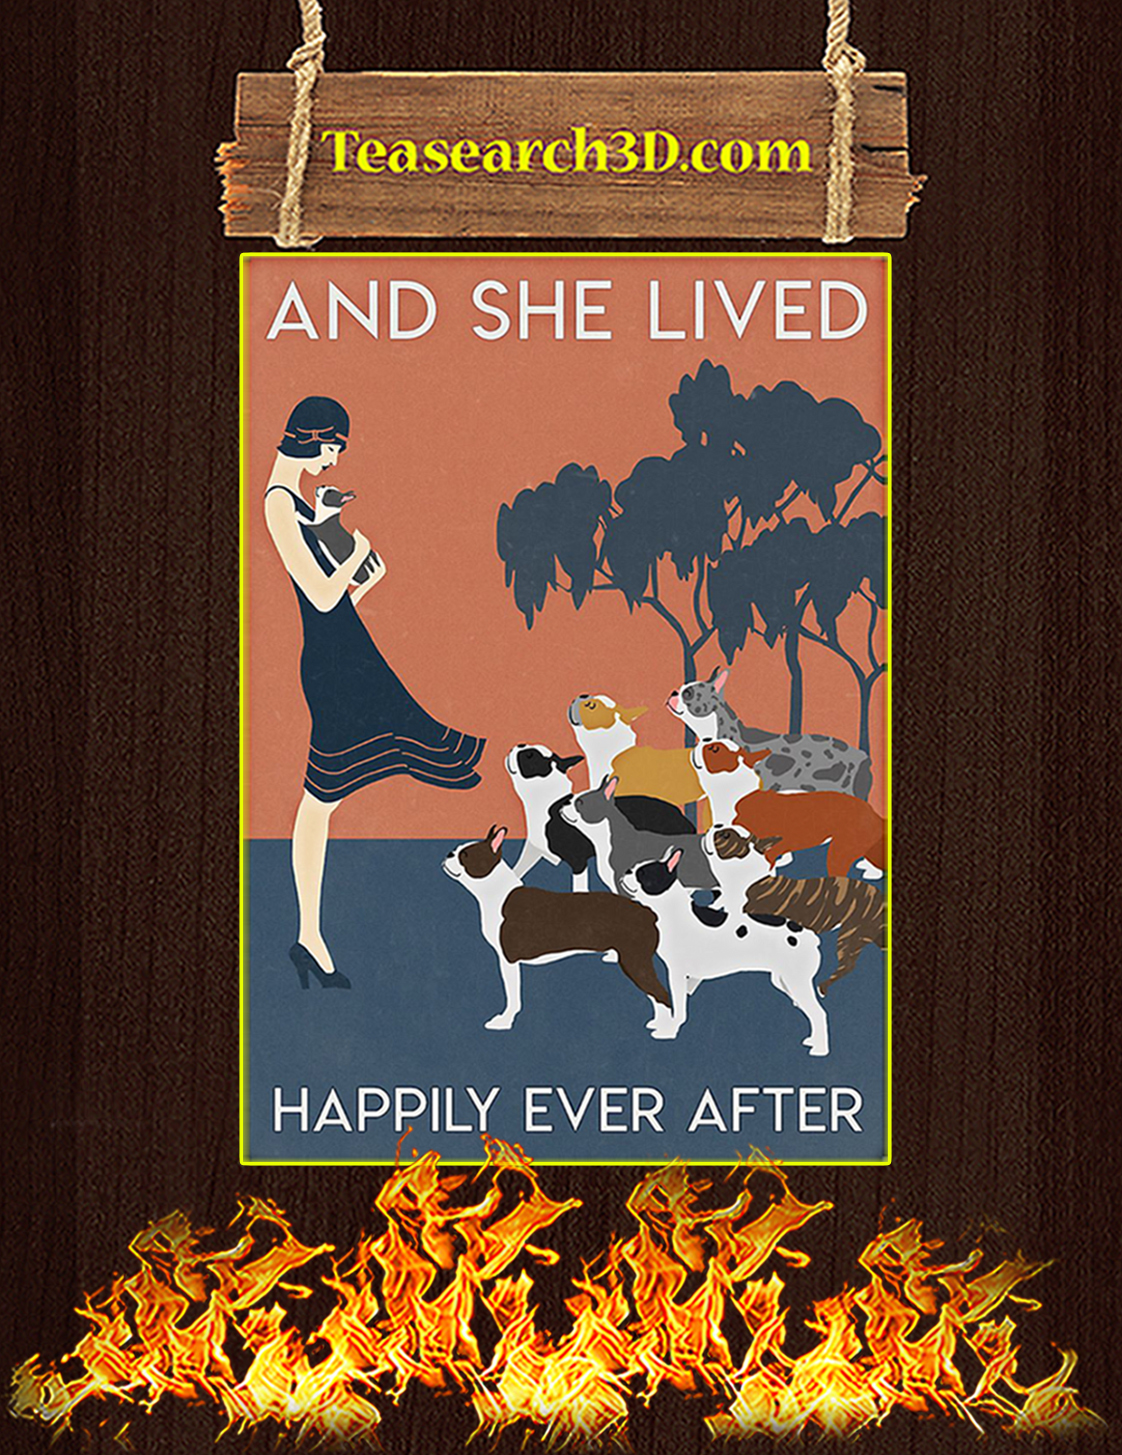 Boston terrier And she lived happily ever after poster A3